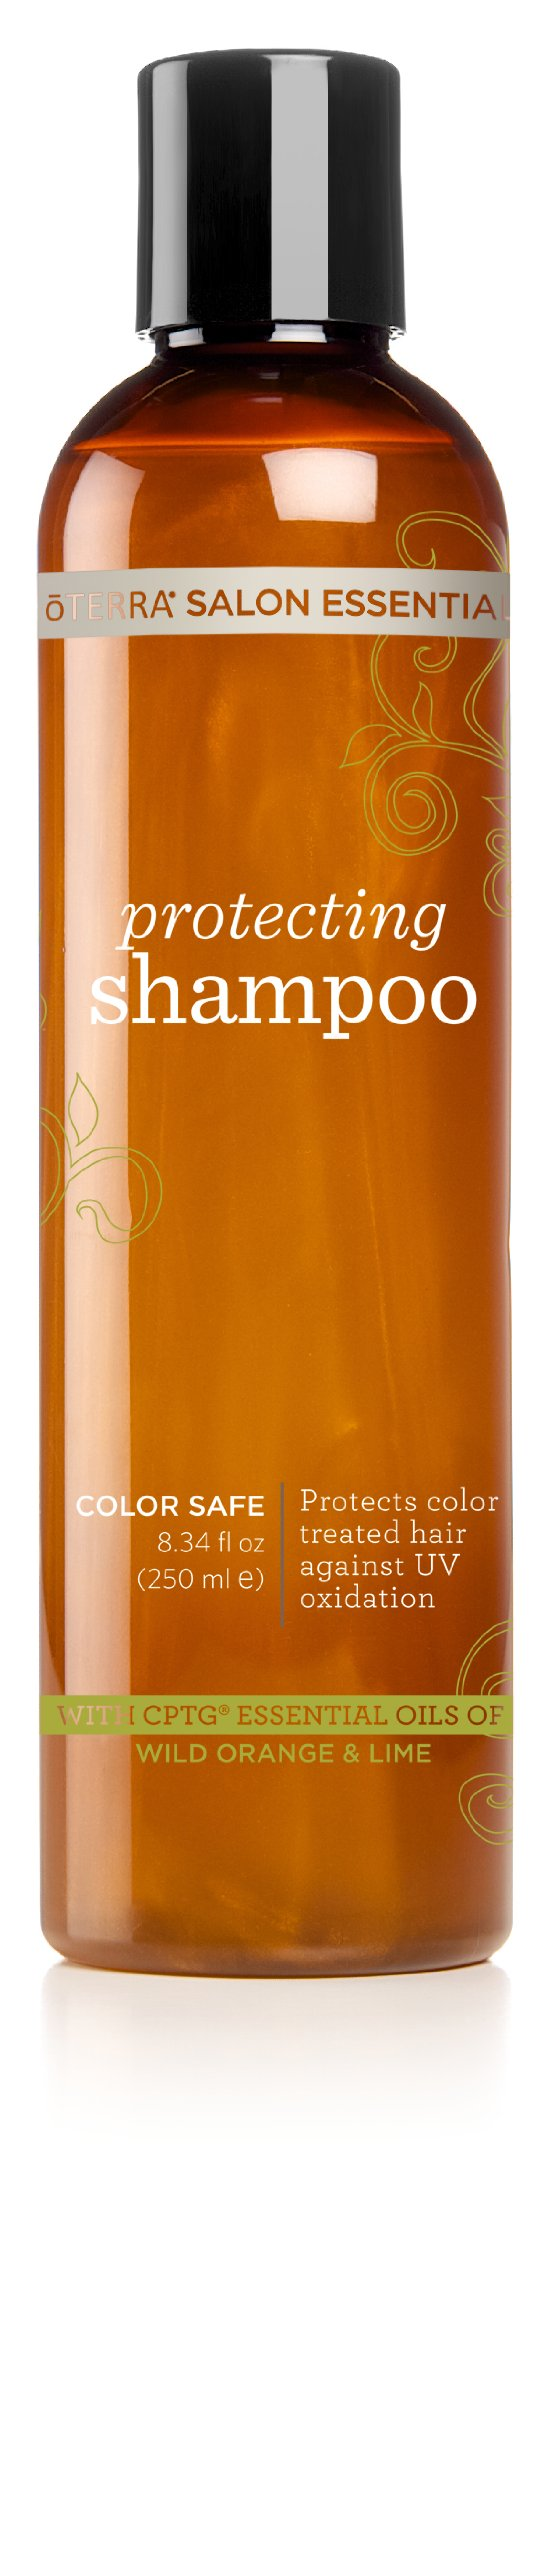 doTERRA - Salon Essentials Protecting Shampoo - 8.34 oz